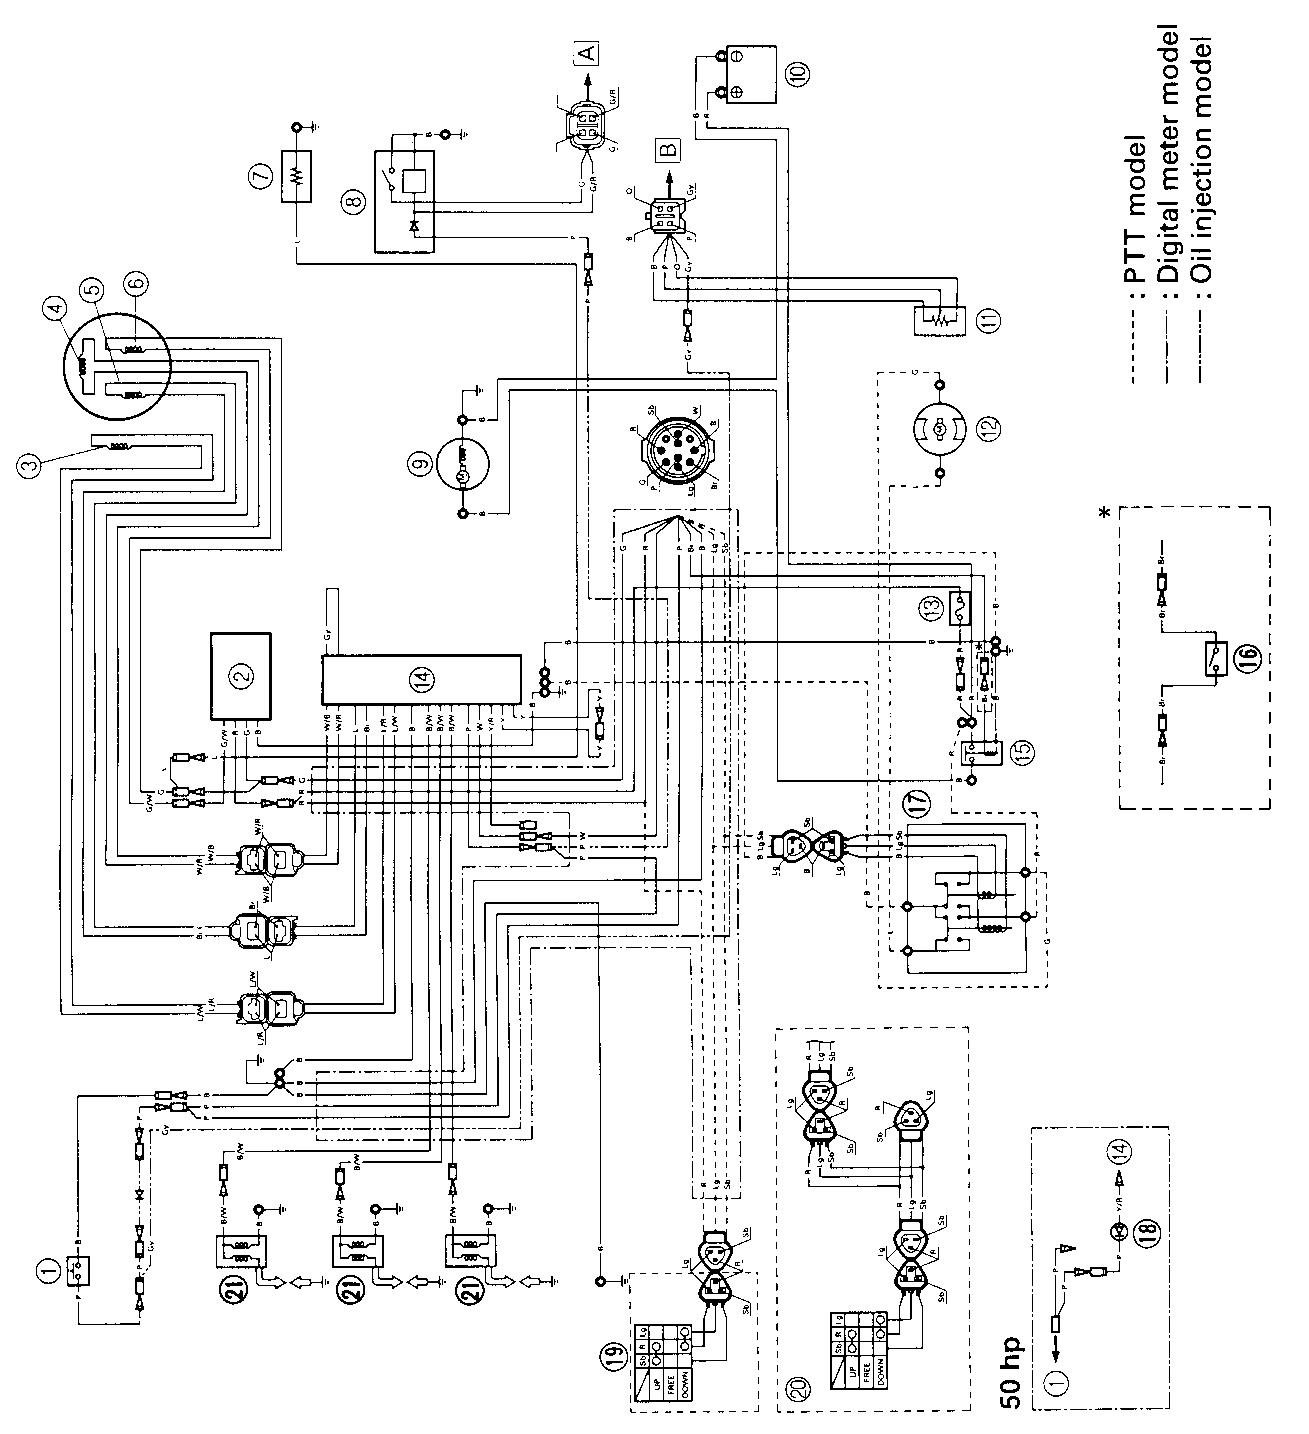 2008 10 04_150209_yamaha_engine_wiring_506070 yamaha tach wiring diagram the wiring diagram readingrat net yamaha outboards wiring diagrams at fashall.co